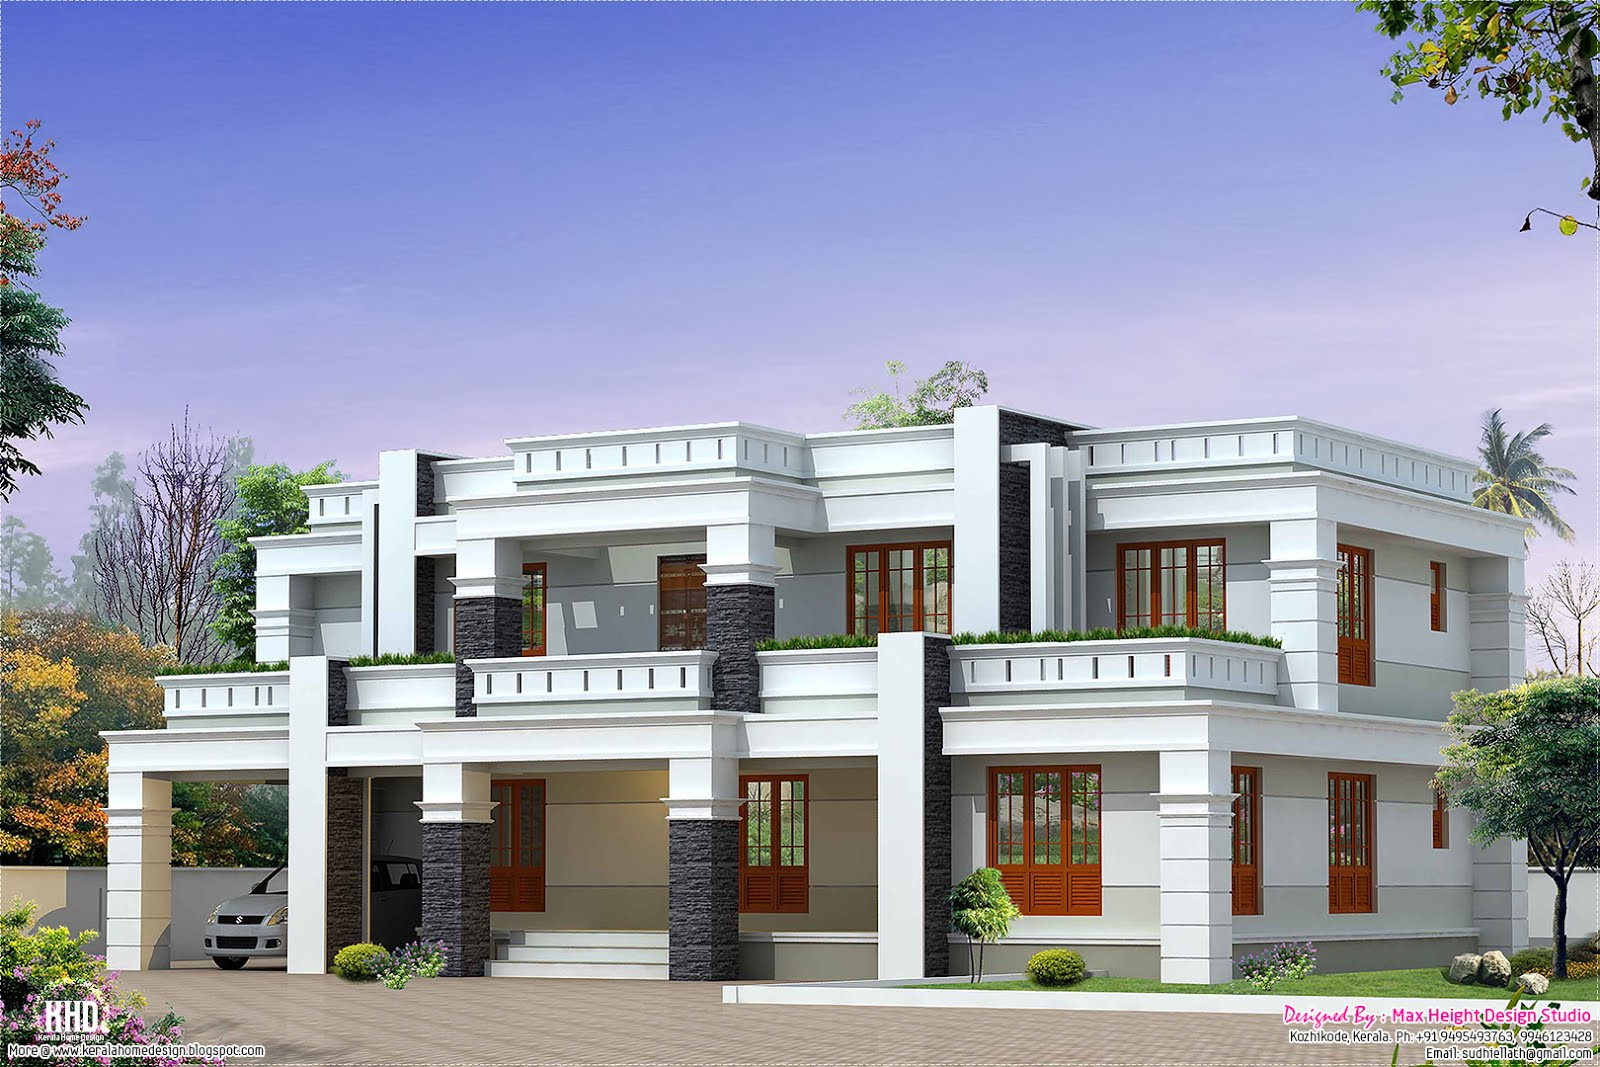 Flat roof luxury home design kerala home design and for Luxury house plans with photos